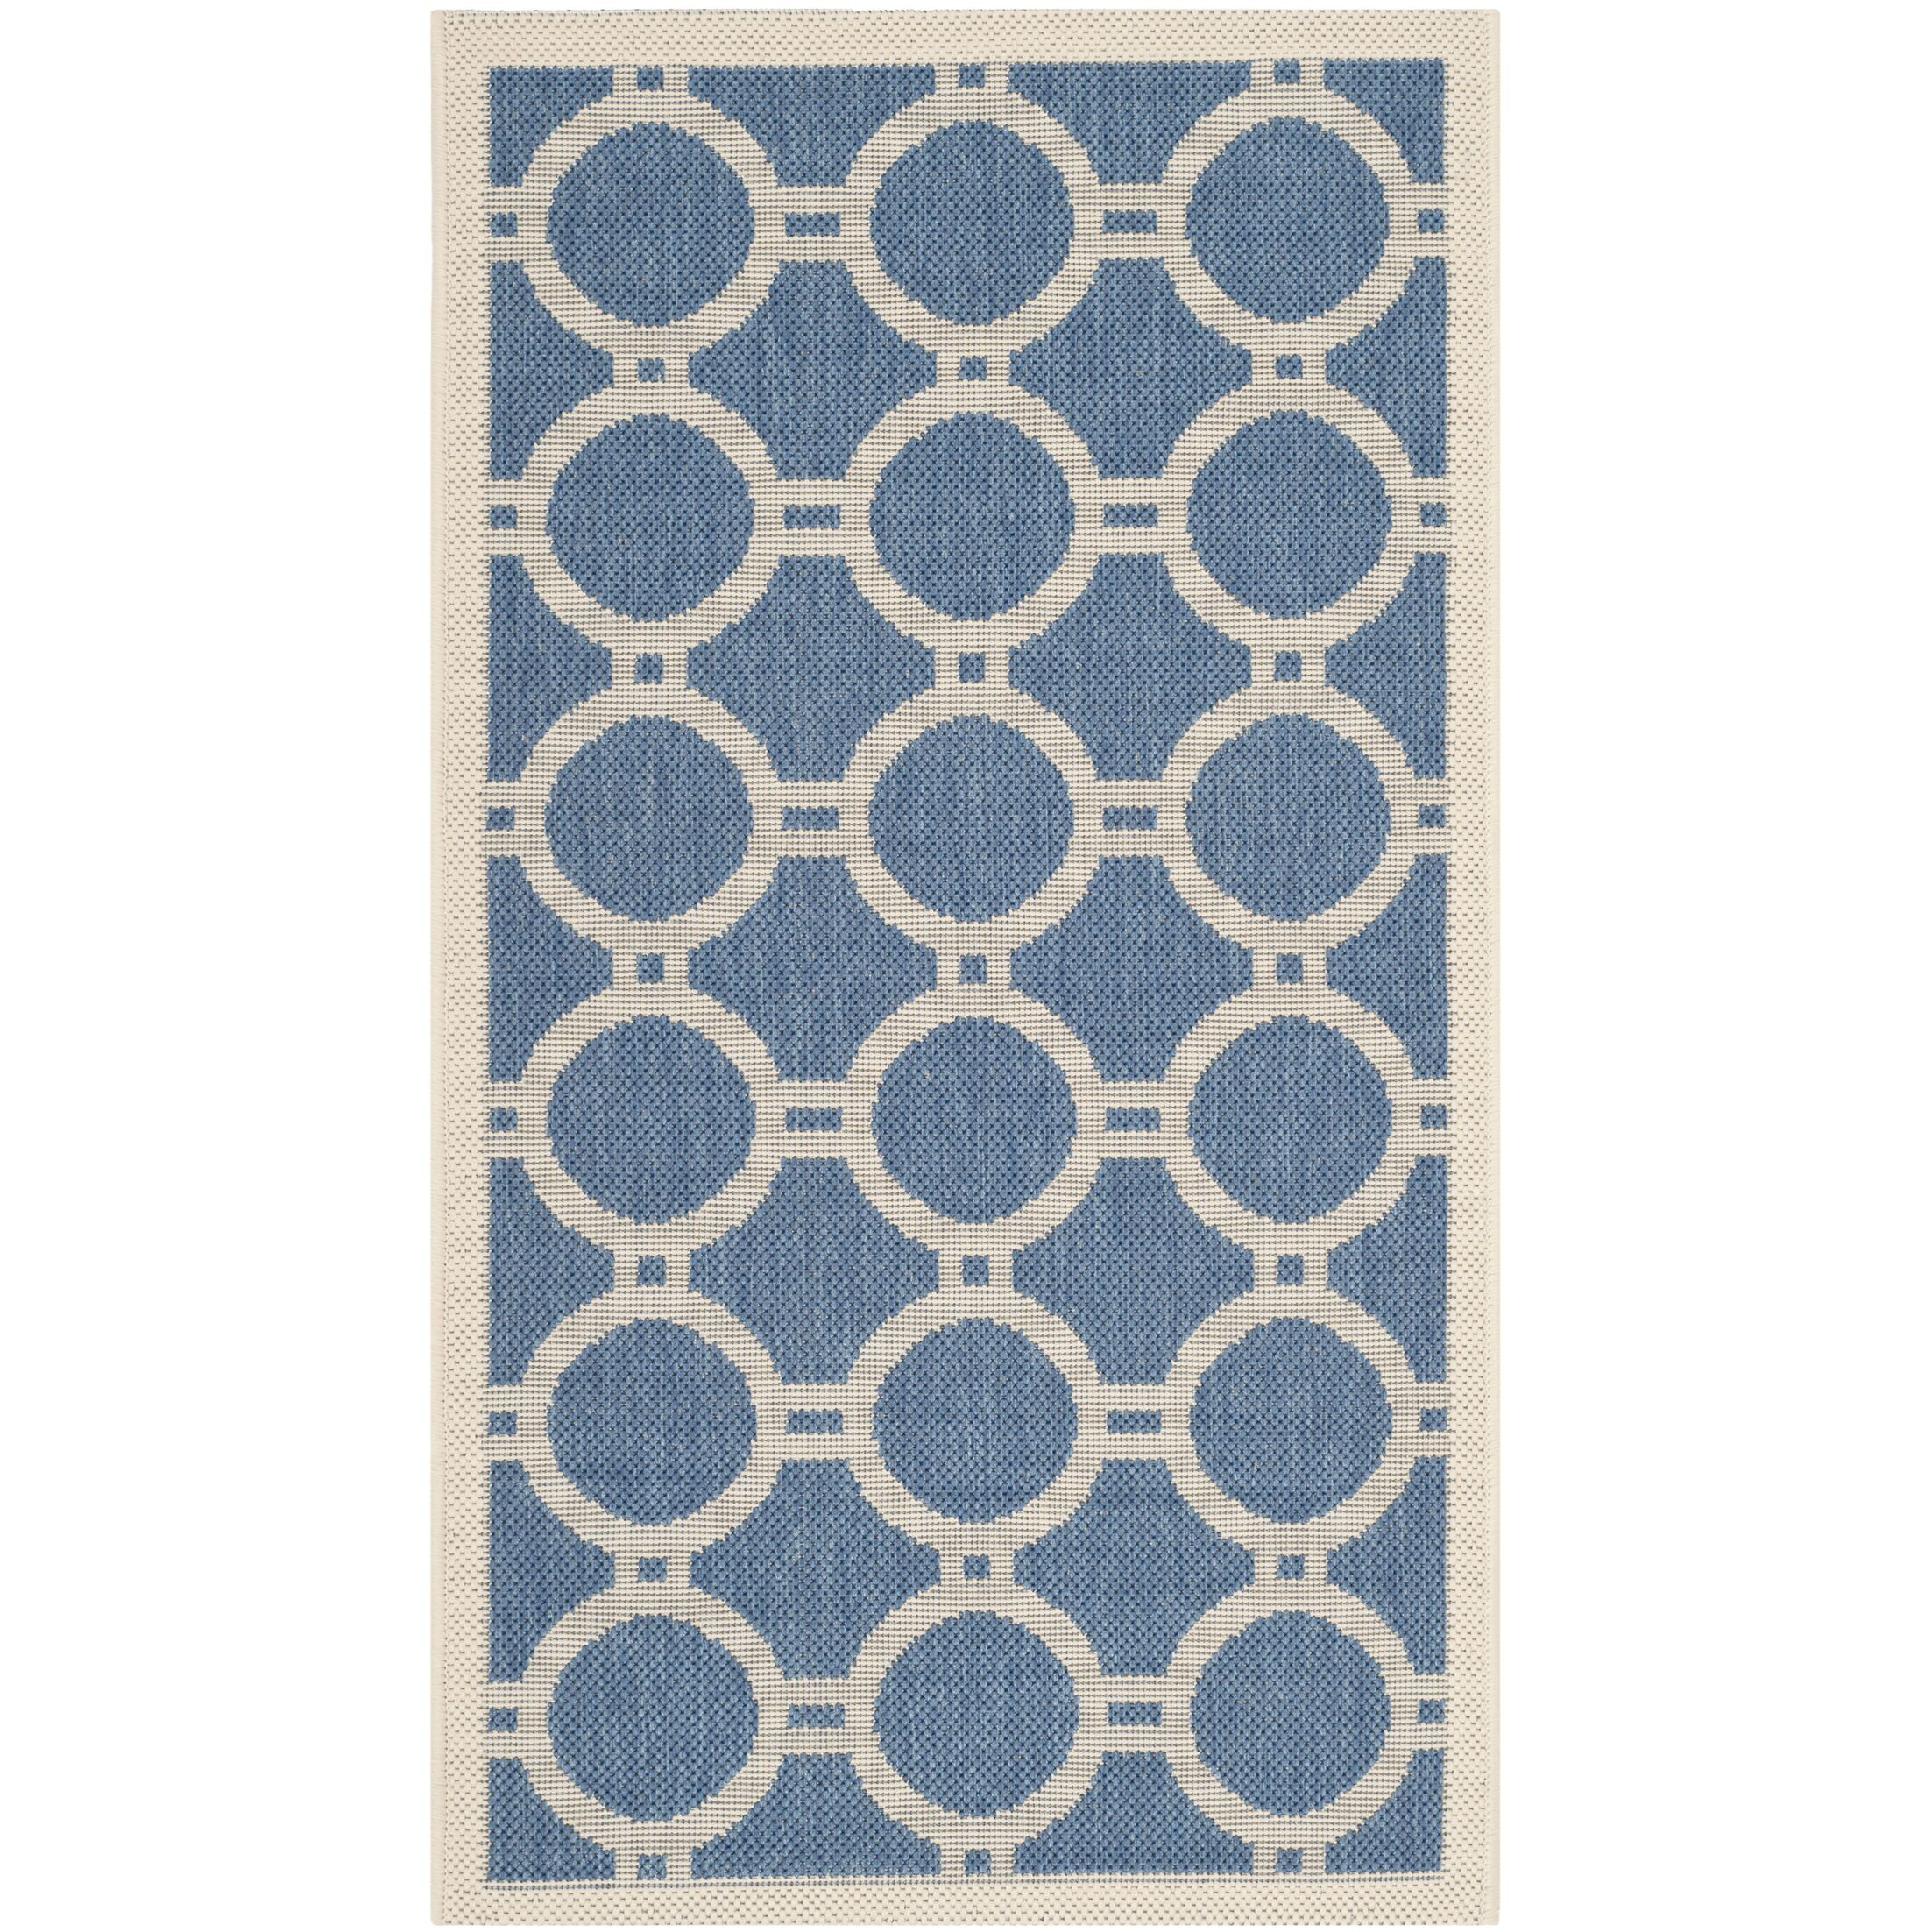 Jefferson Place Blue/Beige Indoor/Outdoor Area Rug Rug Size: Rectangle 6'7